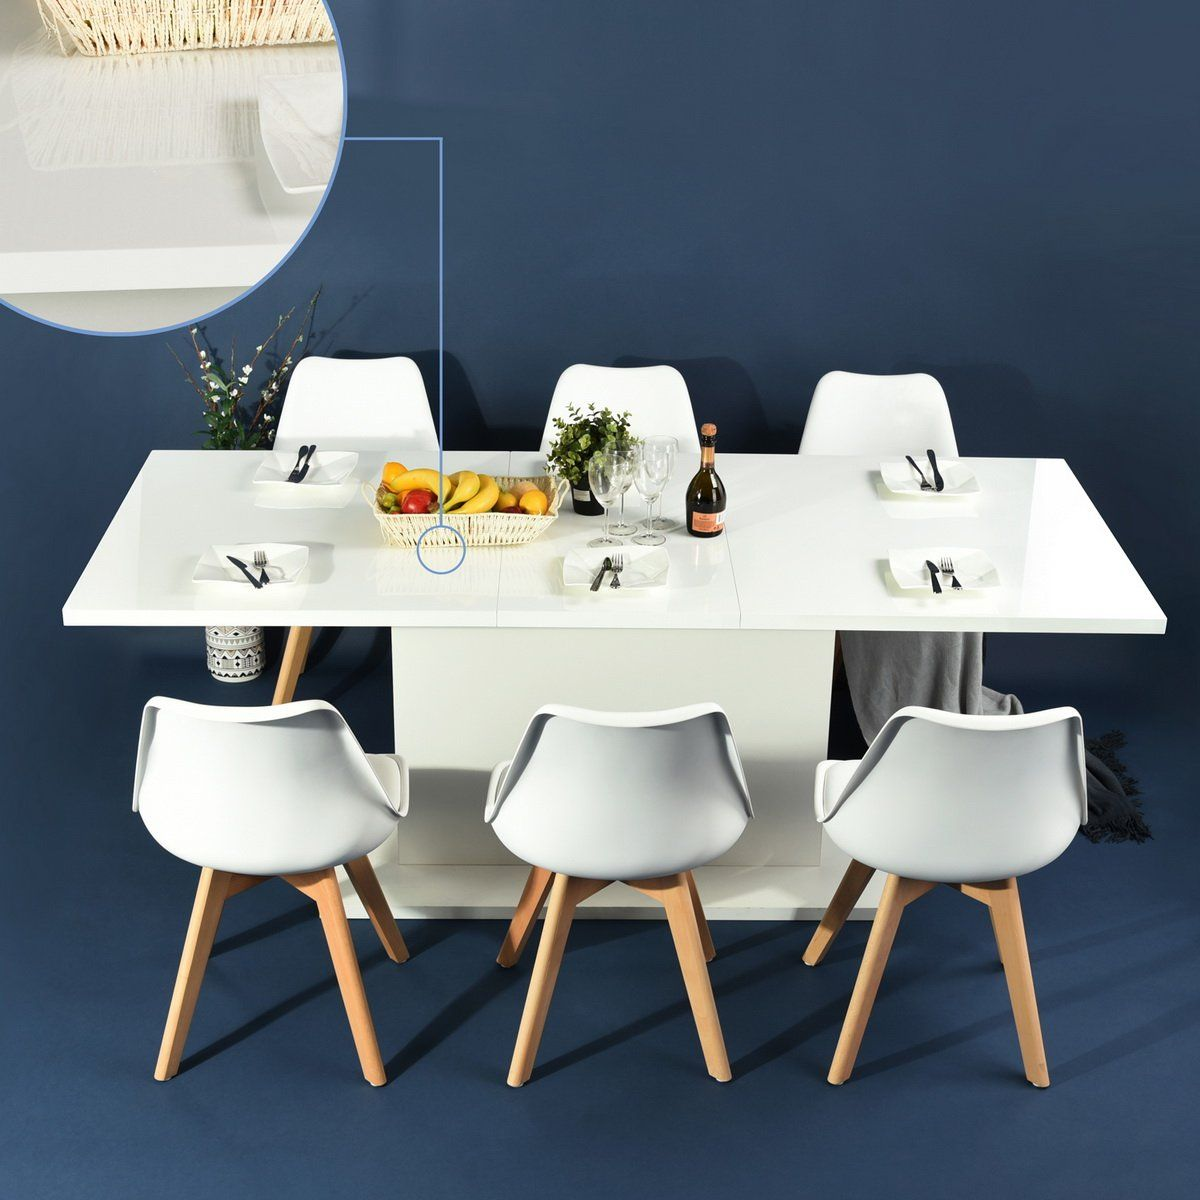 High Gloss White Extendable Rectangular Dining Table Mltifunction E Saving Wood